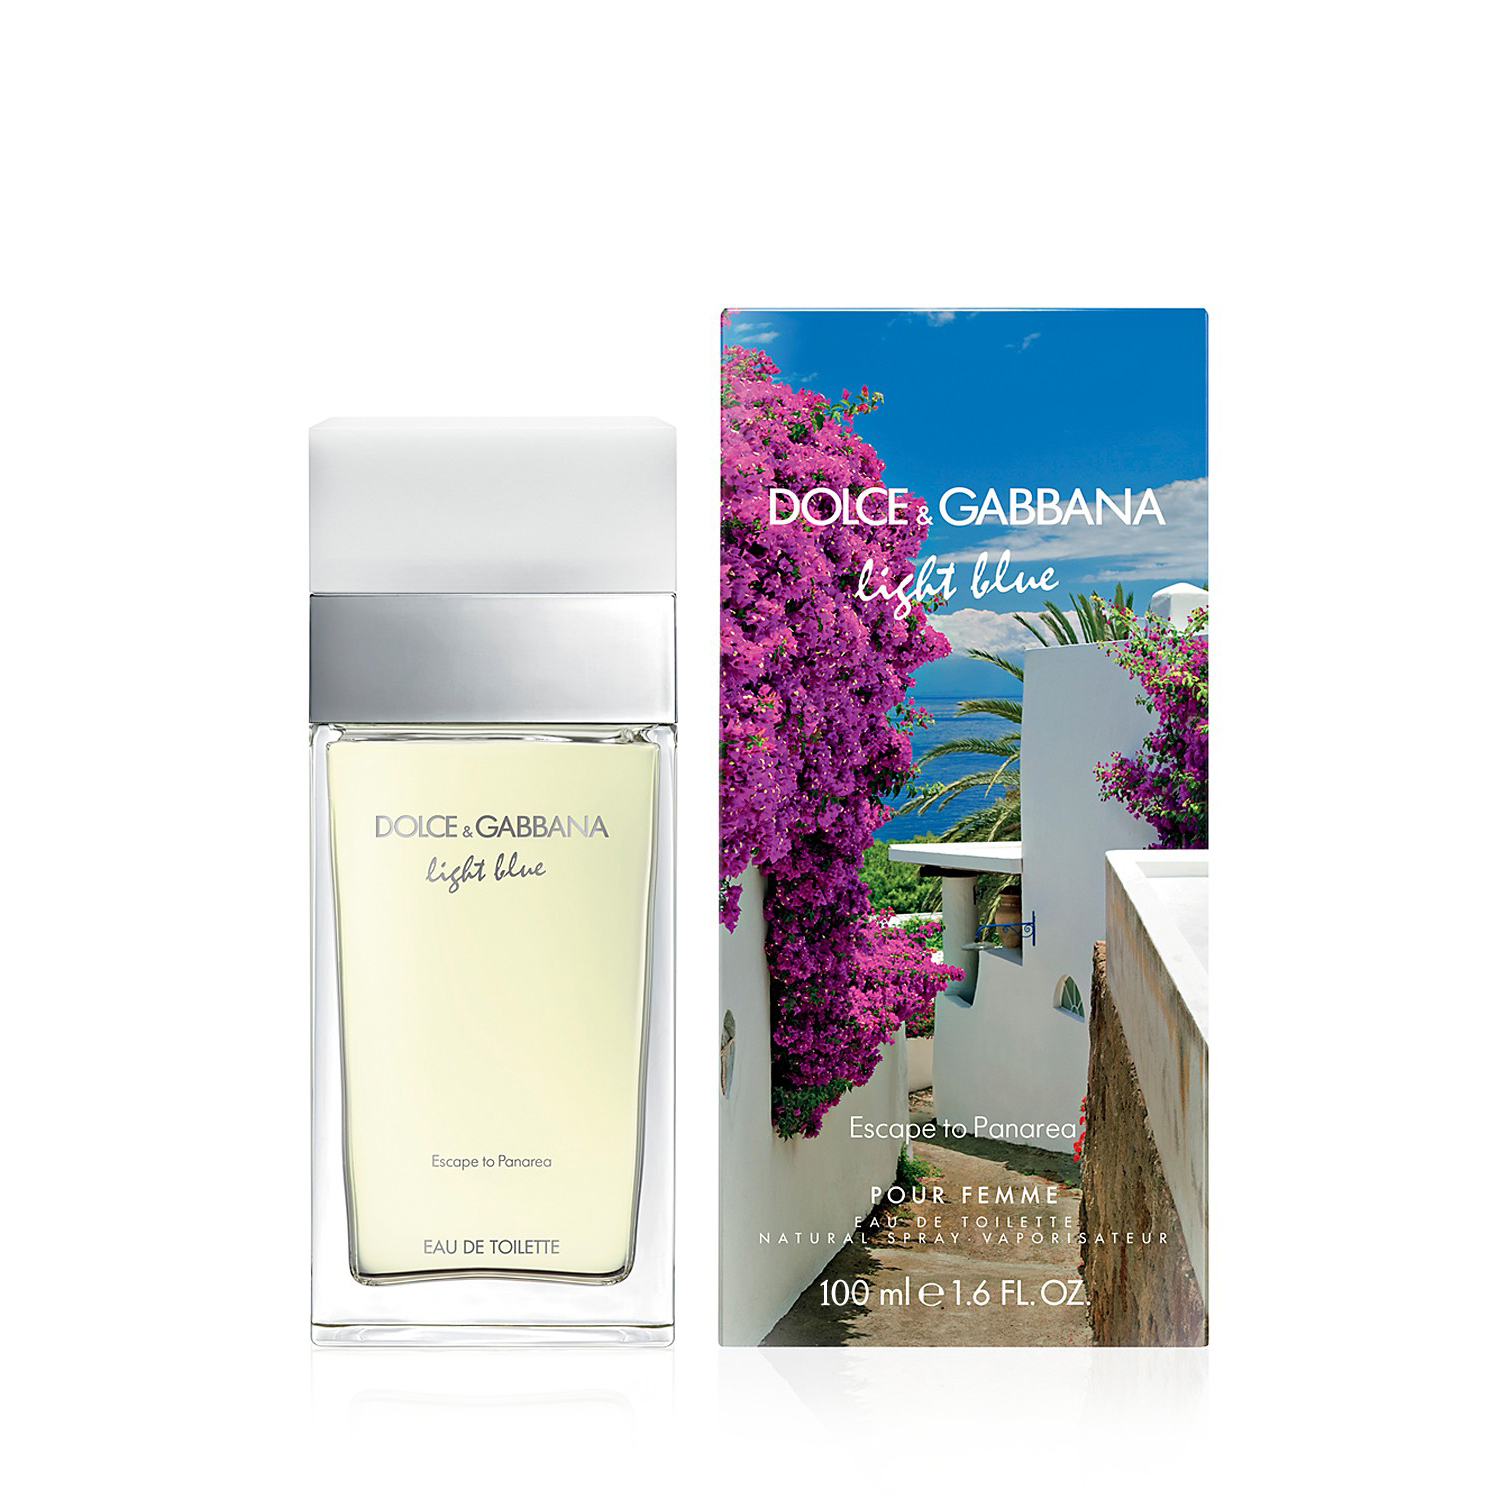 Apa de toaleta Dolce&Gabbana Light Blue